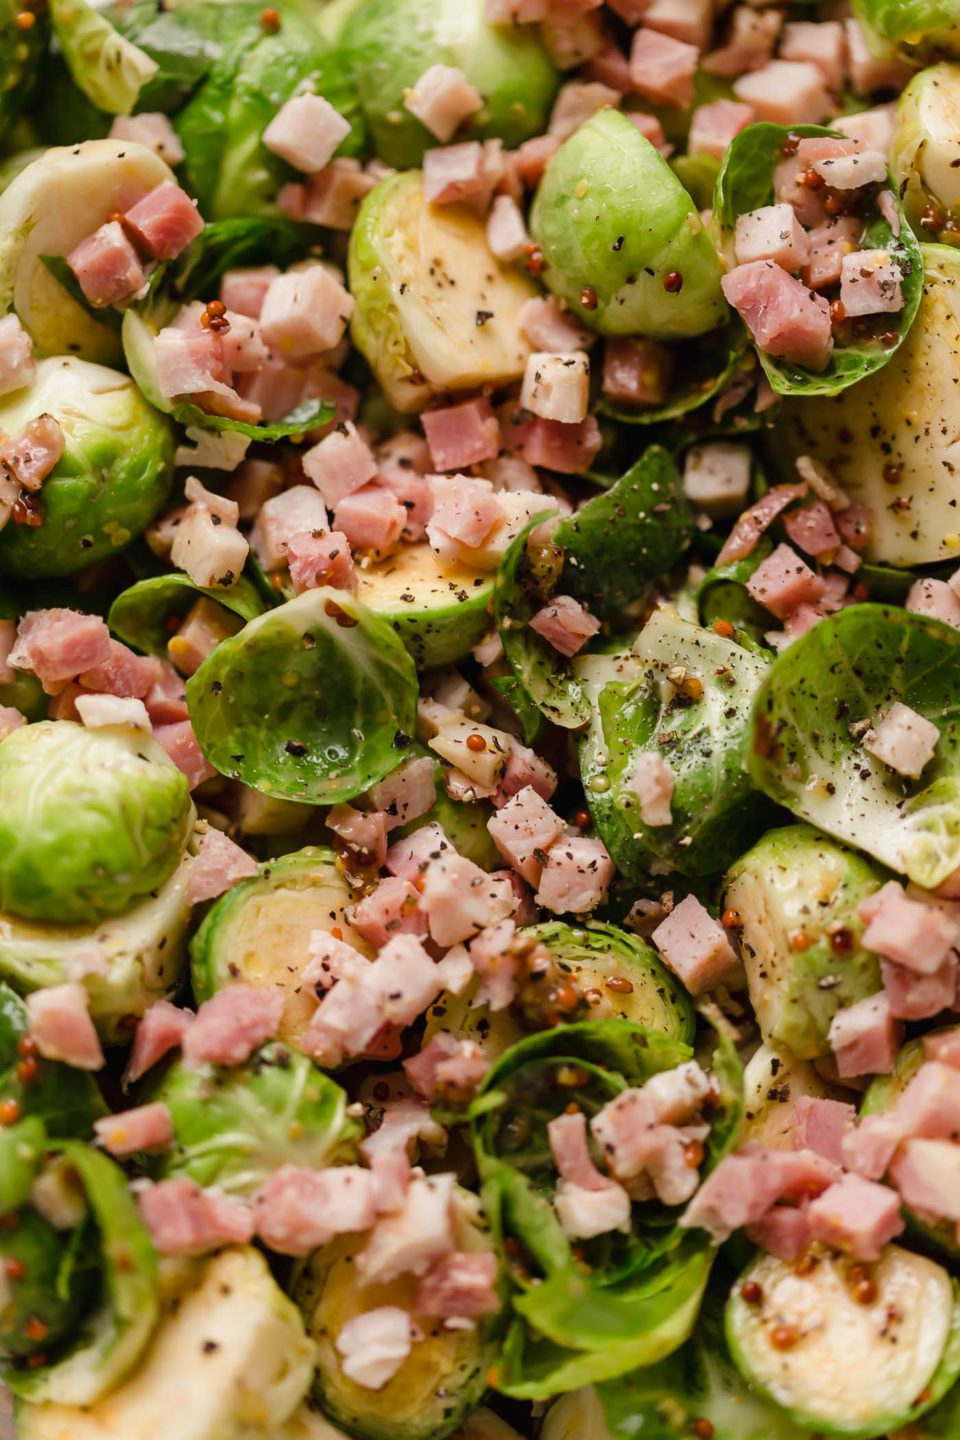 Brussels sprouts with pancetta, tossed in a maple mustard roasting sauce before being roasted.